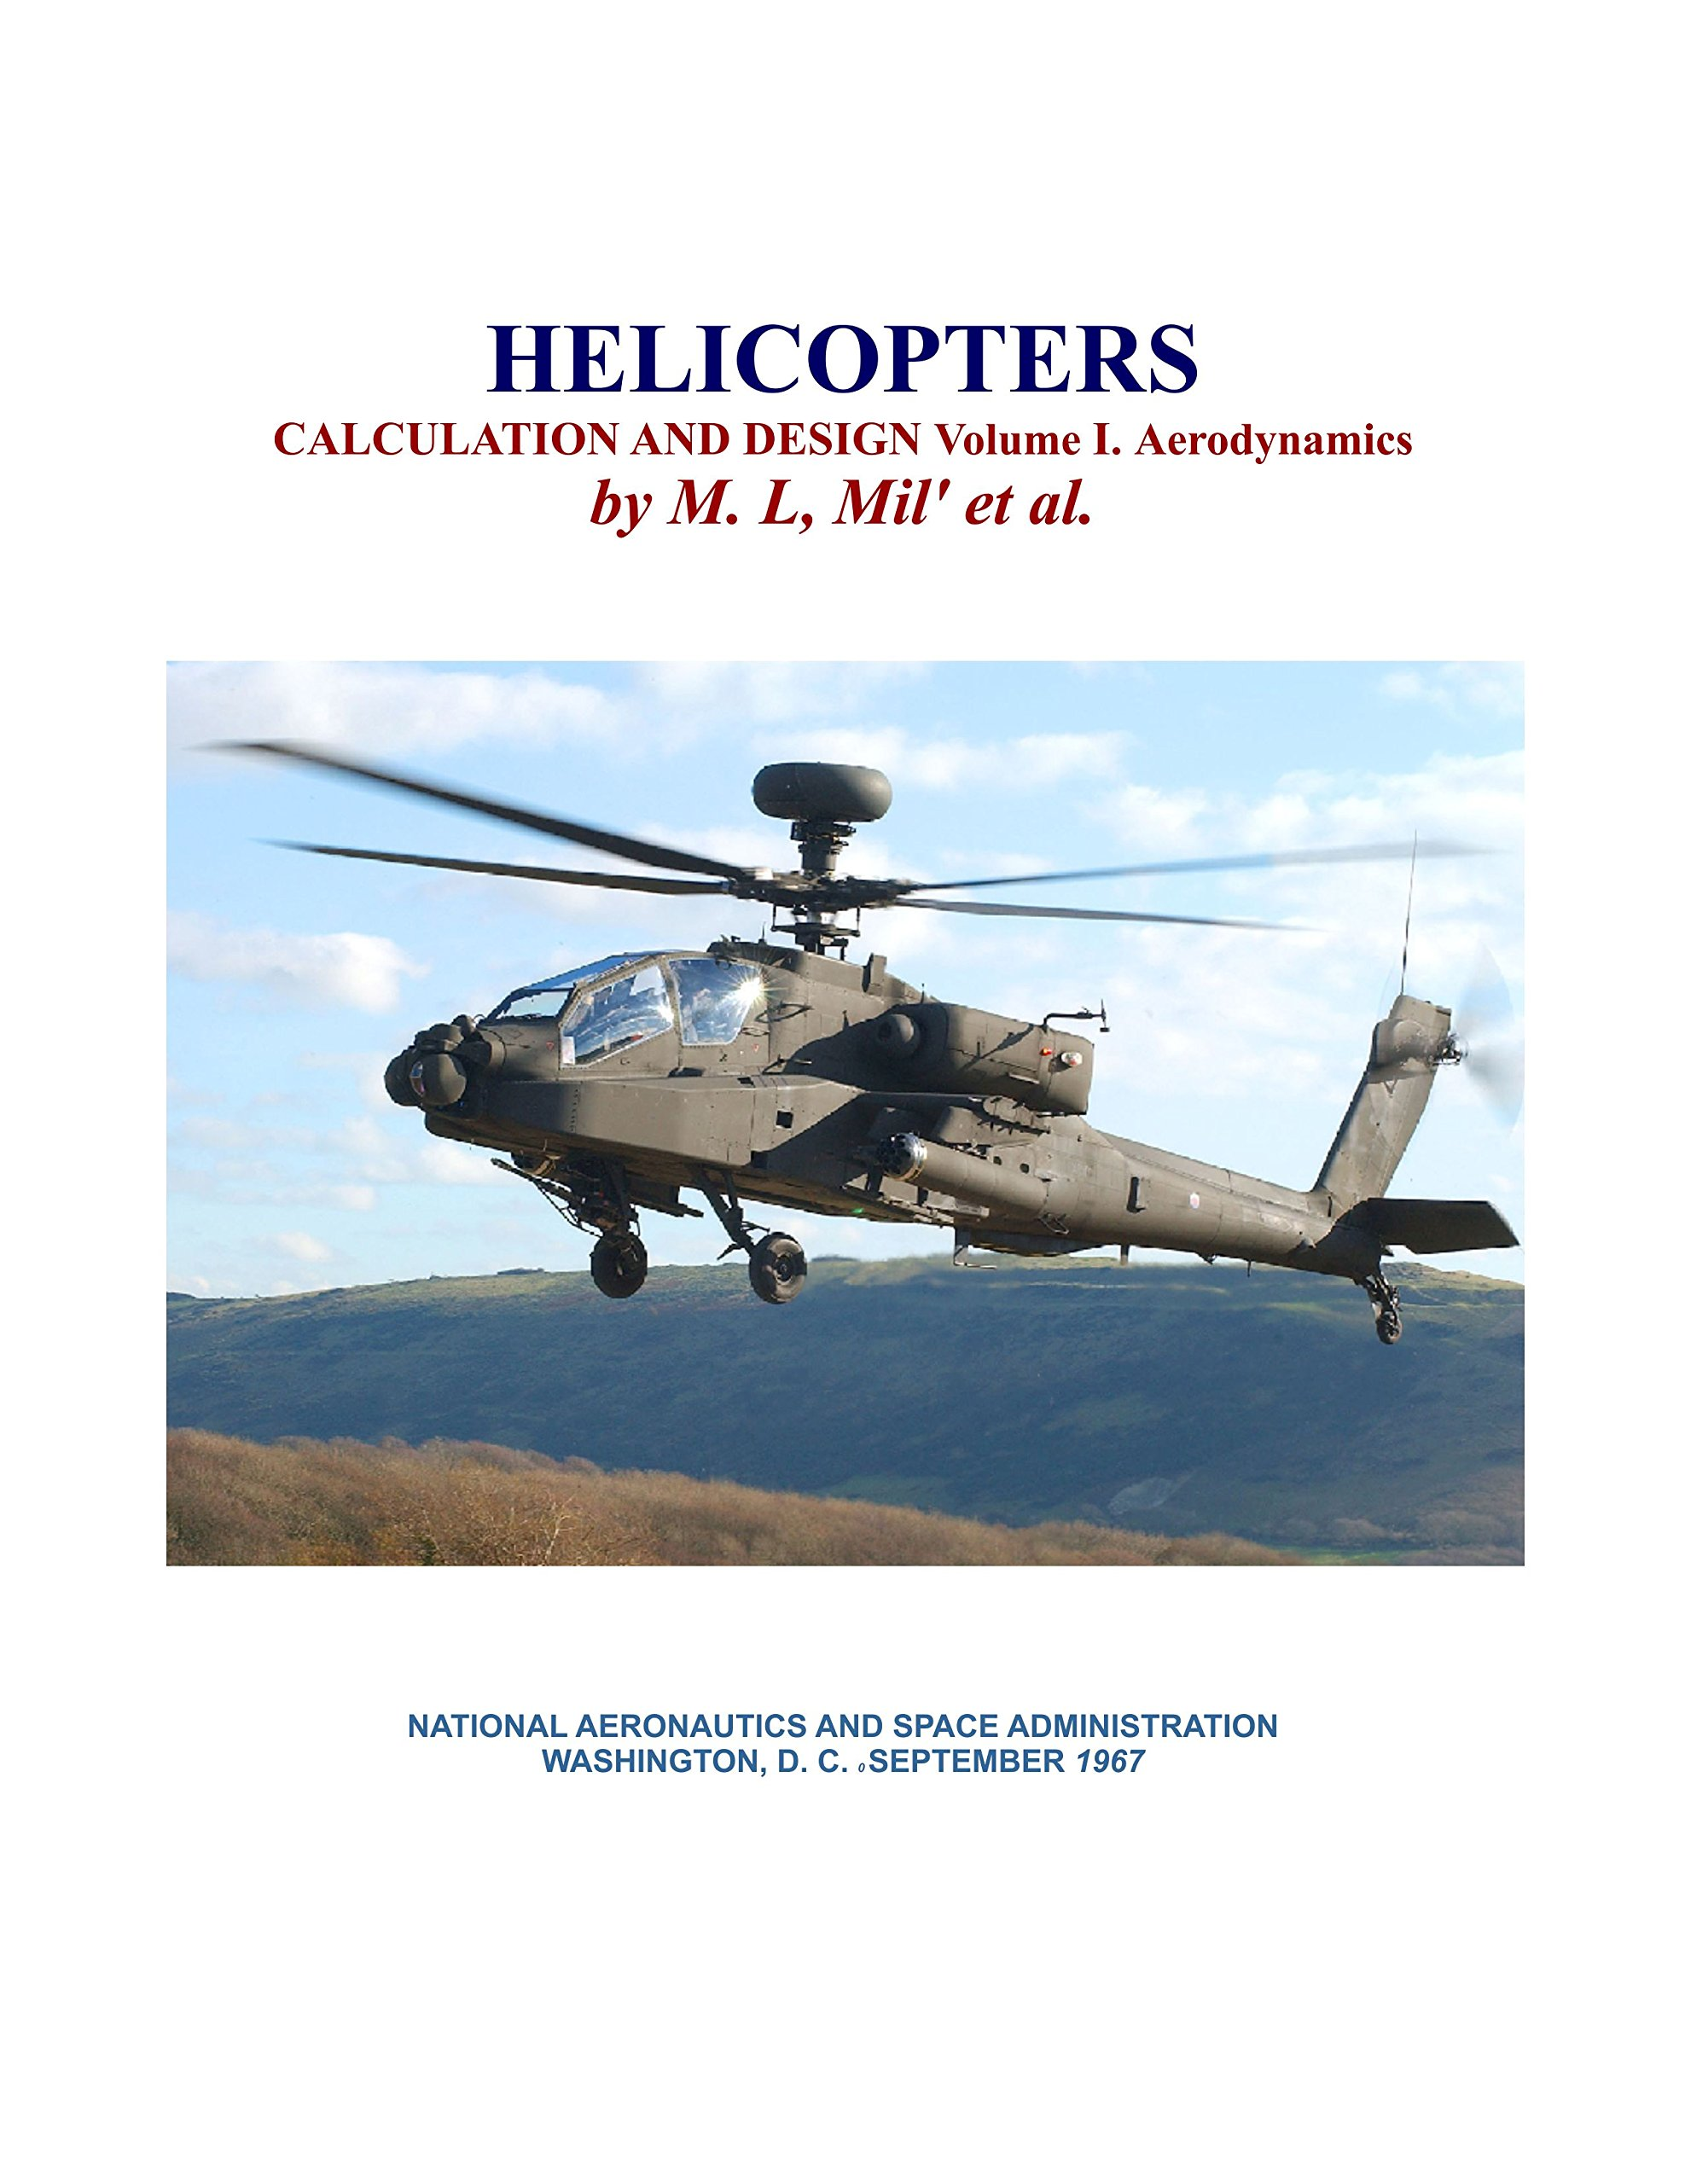 HELICOPTERS CALCULATION AND DESIGN Volume I. Aerodynamics [Re-Imaged from Original. 2016 STUDENT FACSIMILE of 1967 Edition]